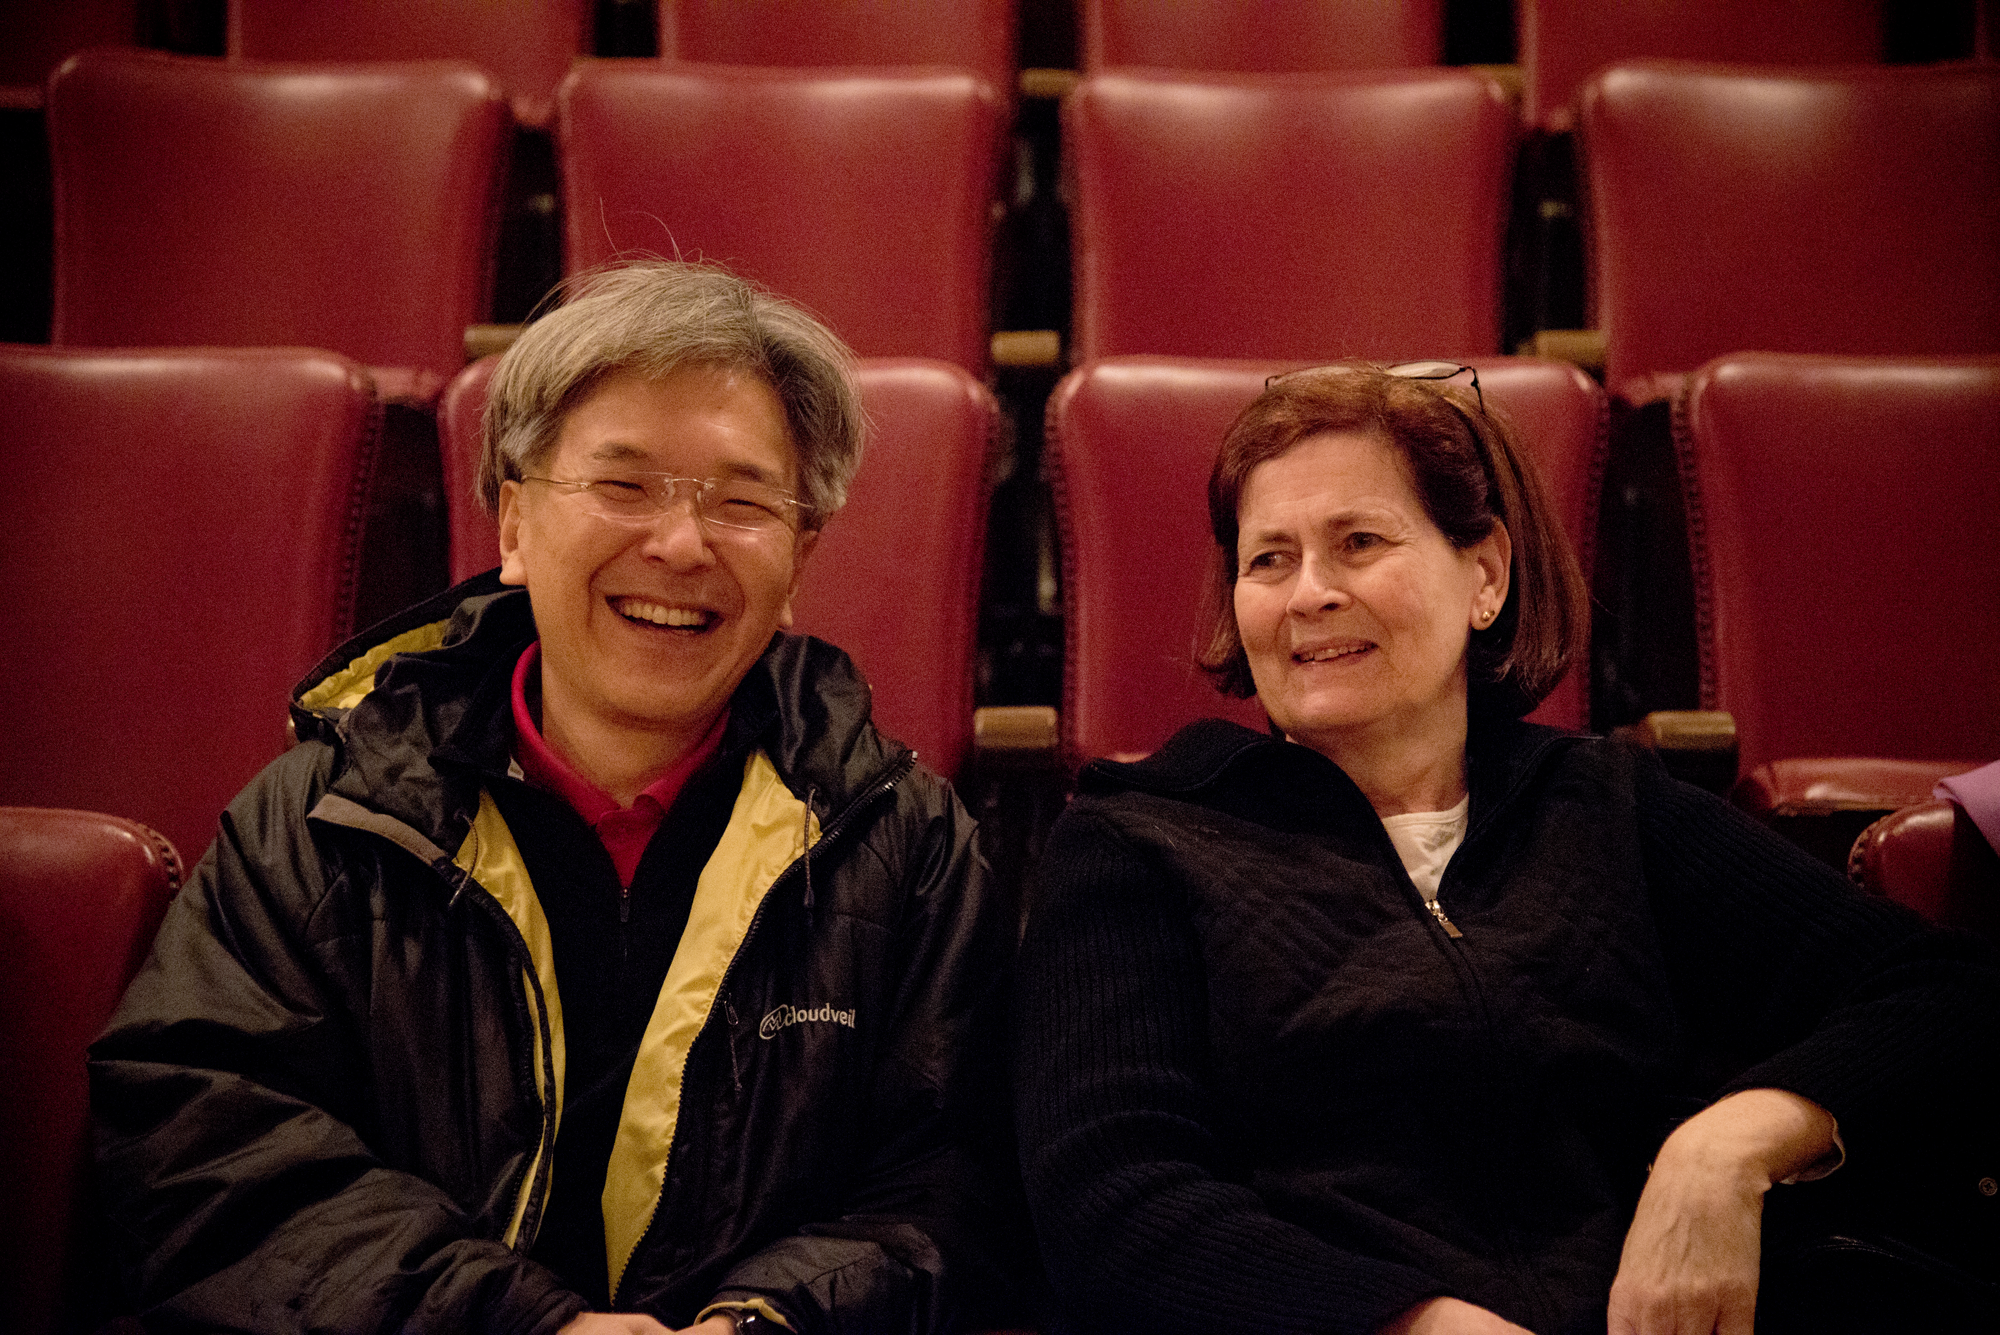 Conductor Yoichi Udagawa before rehearsal with violinist Priscilla Hunt. She has been a member of the MSO for over 44 years!